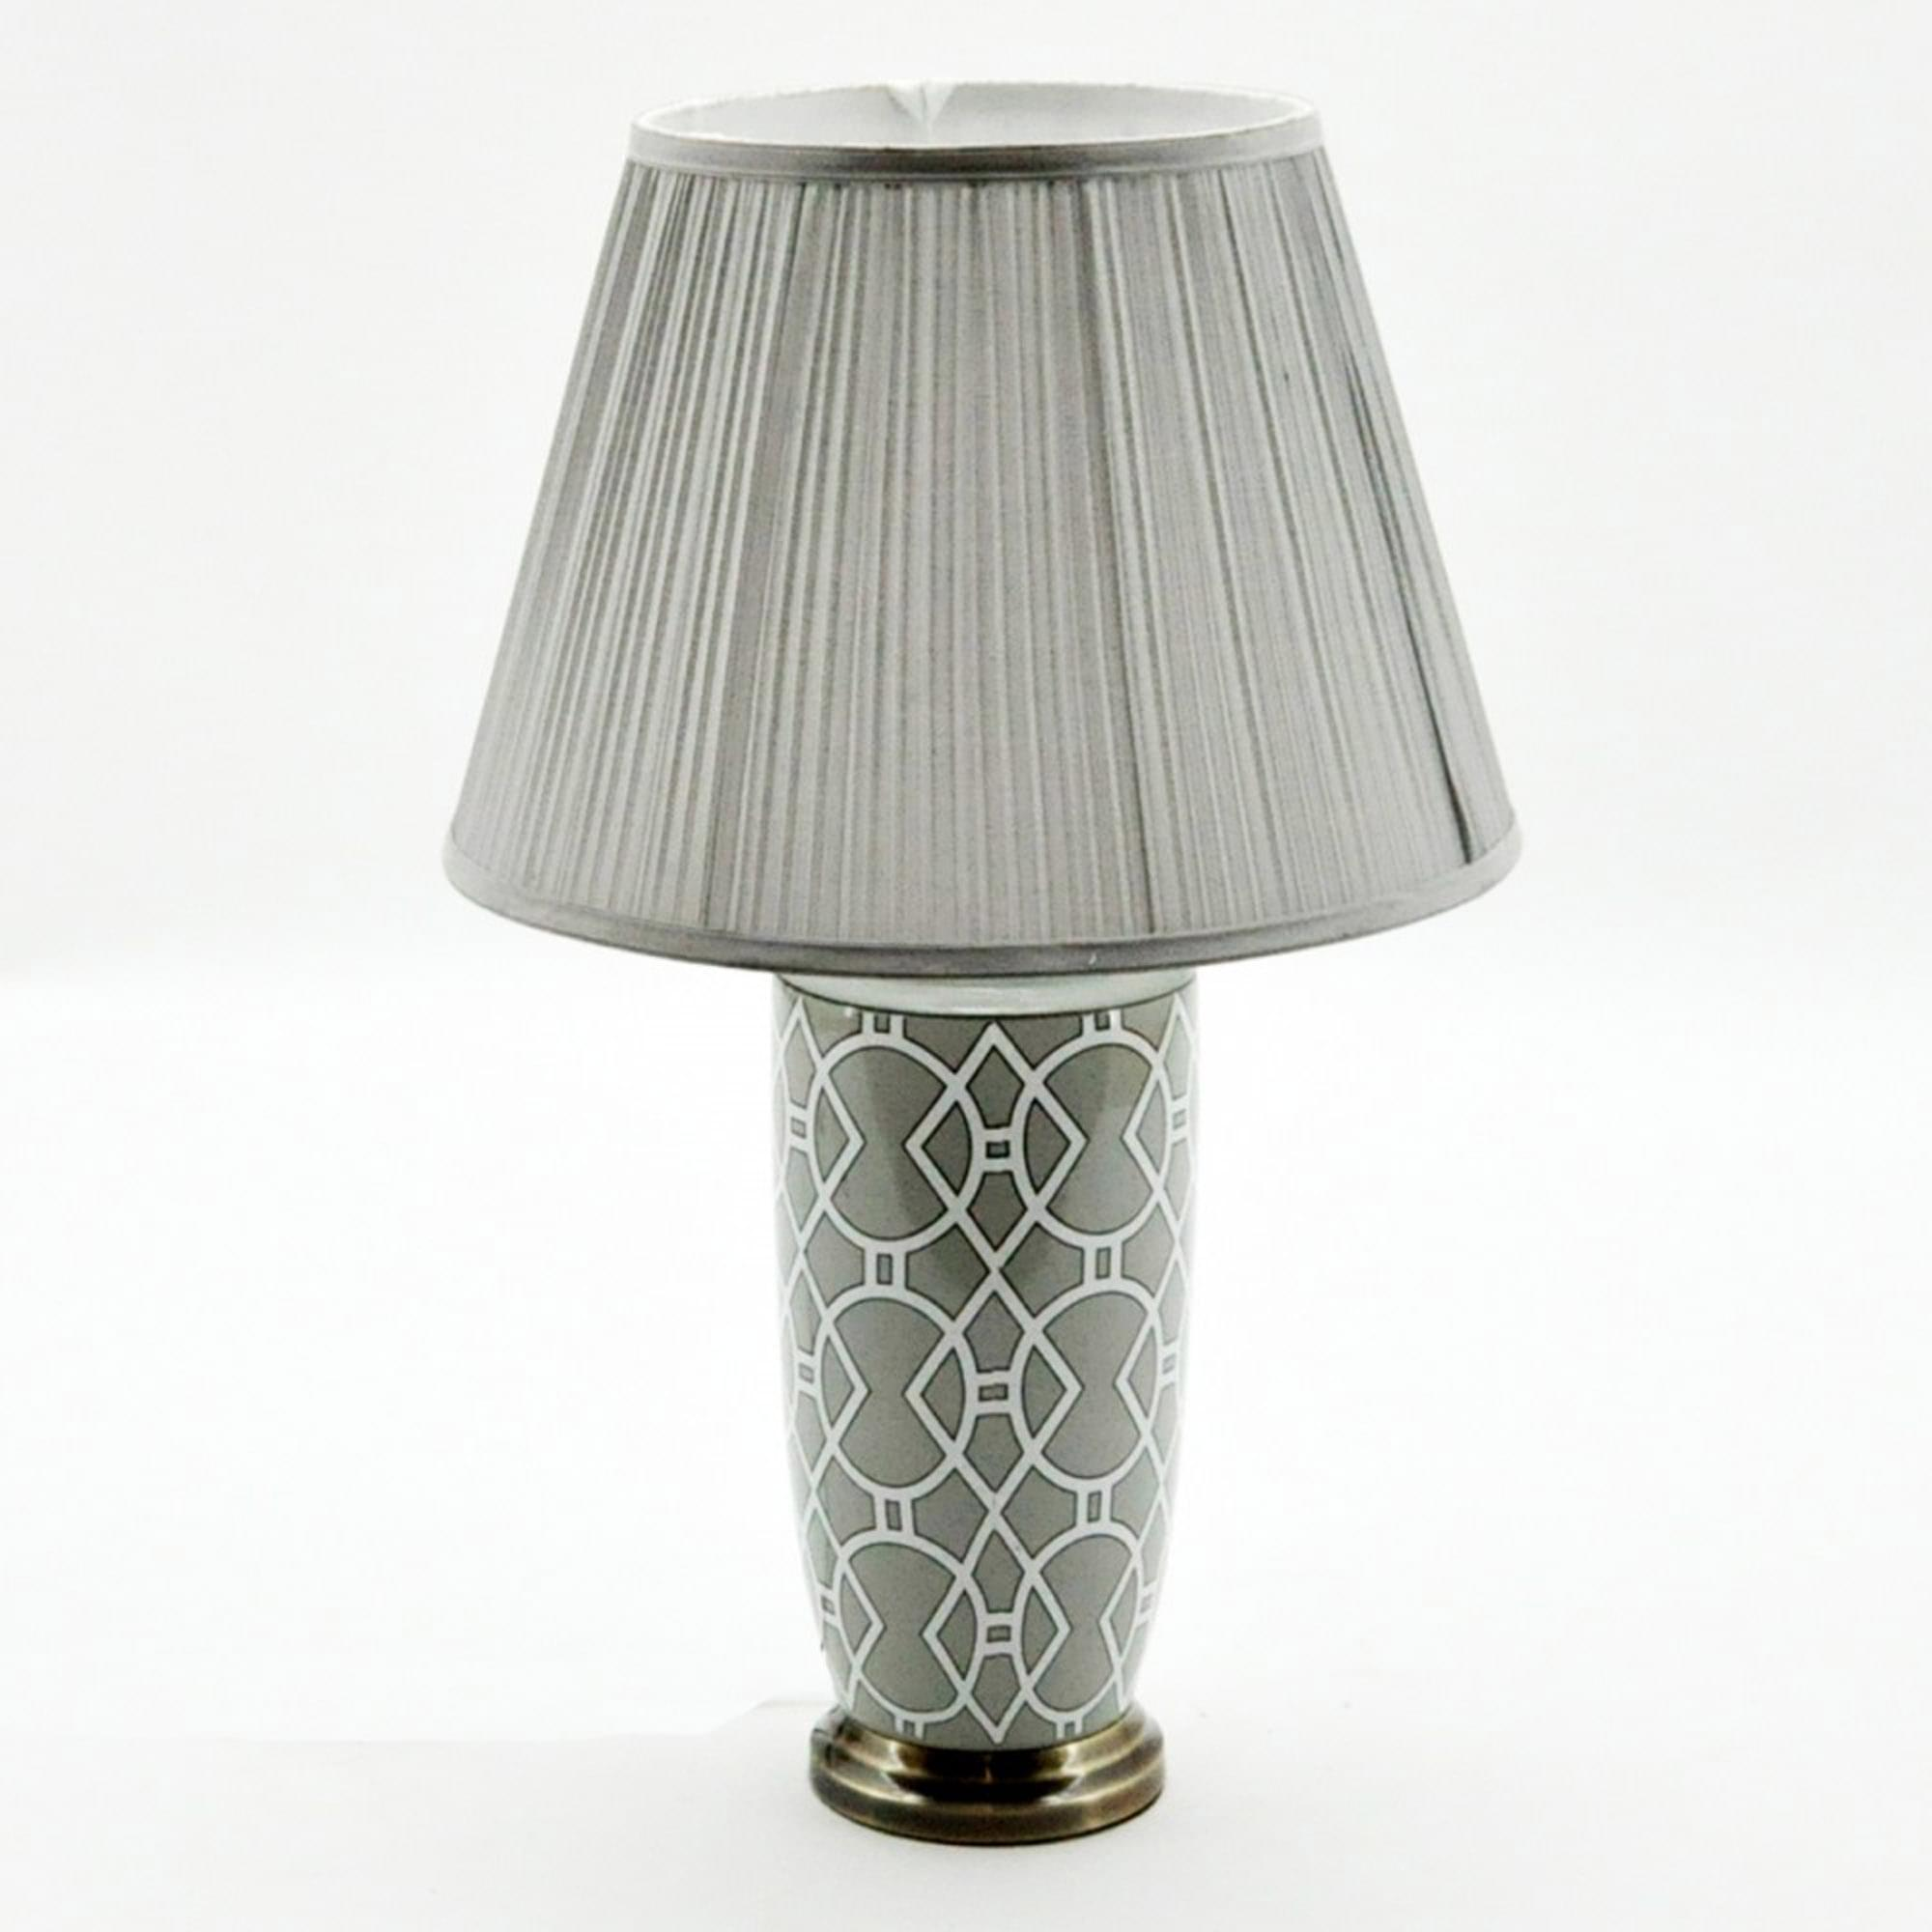 Decorative Grey Table Lamp | Table Lamps